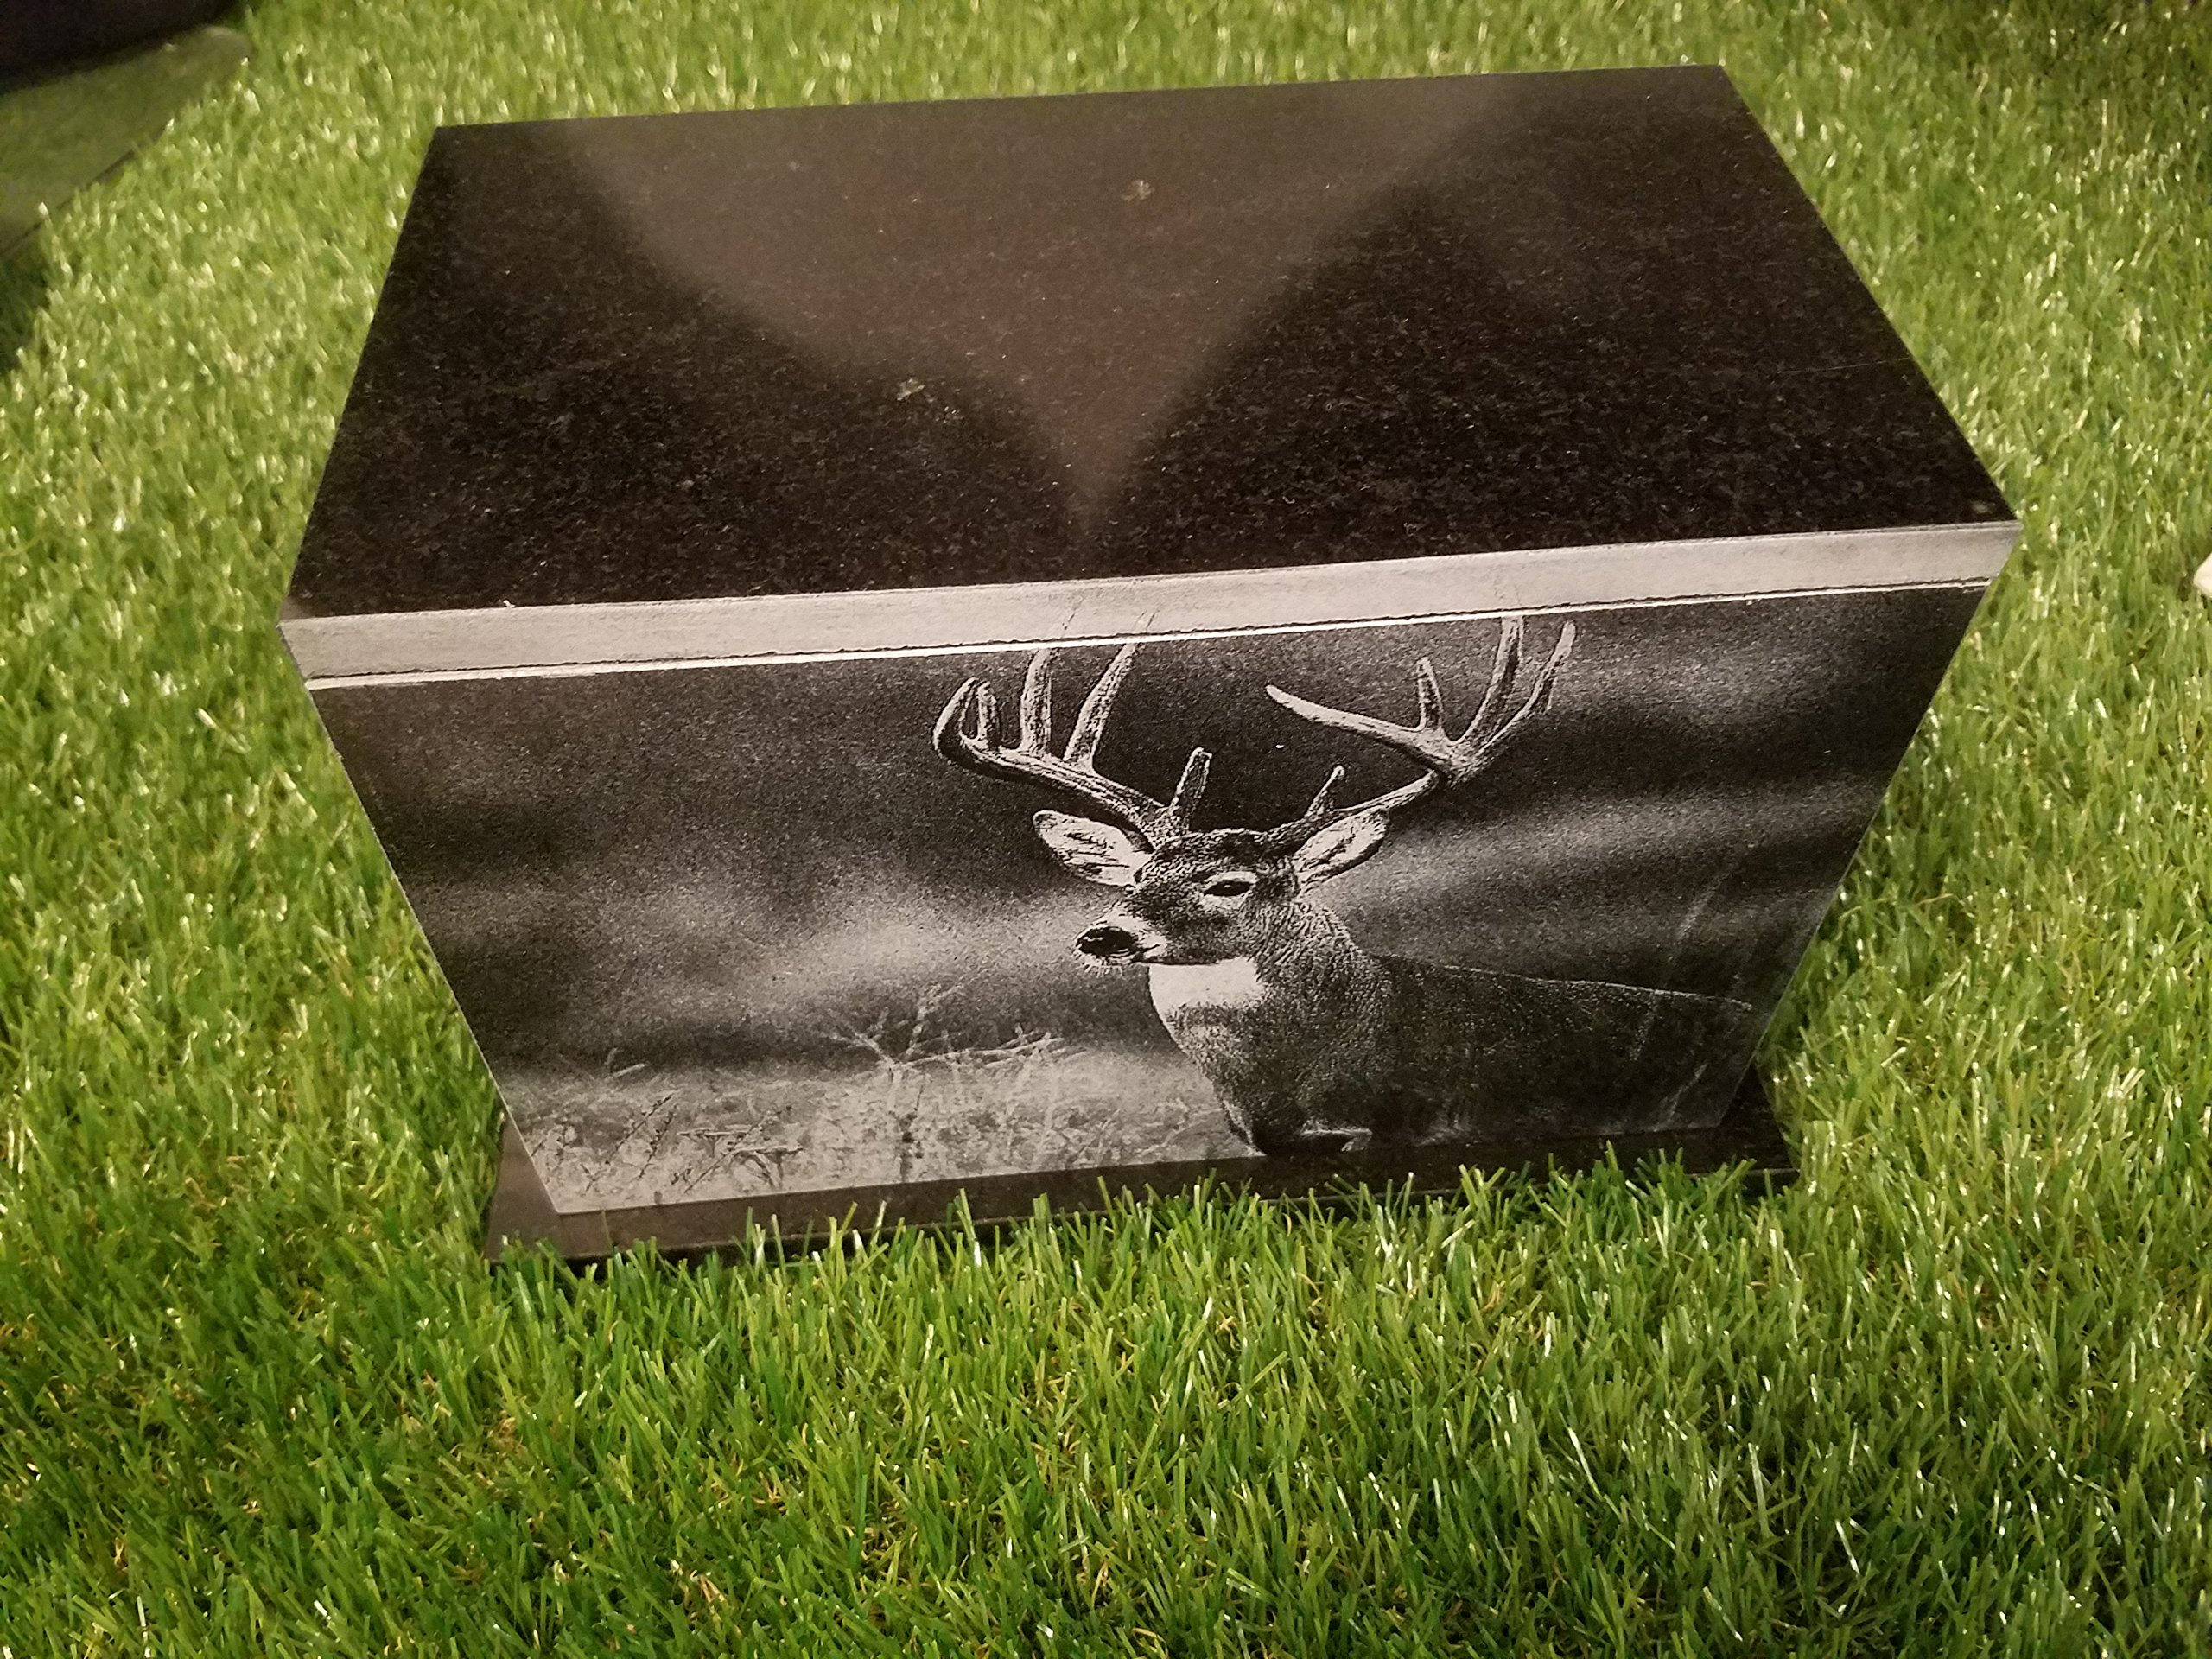 175 Cubic inches Human Granite Urn Engraved Deer Hunting Bass Fishing 175 CU In